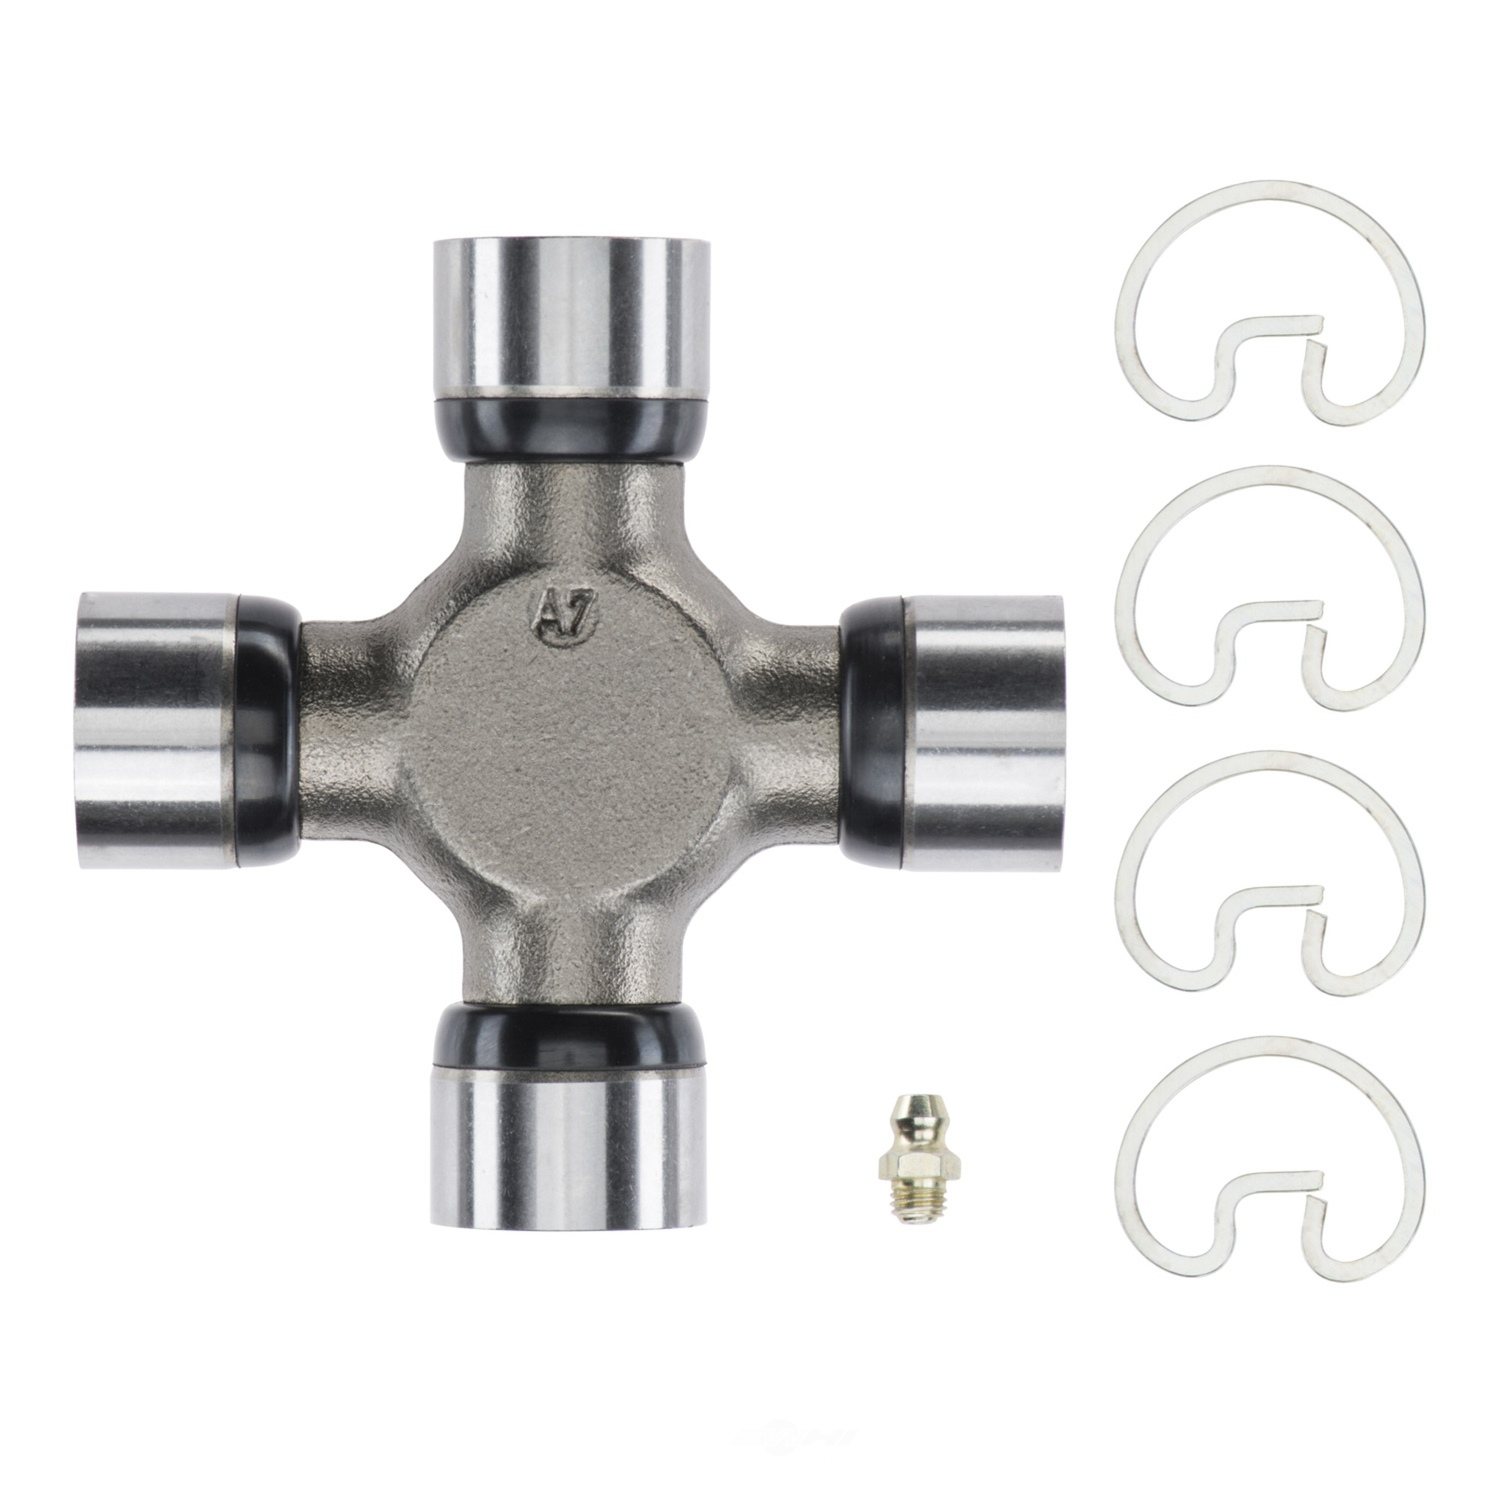 MOOG DRIVELINE PRODUCTS - Universal Joint (Rear Driveshaft at Rear Axle) - MDP 330A